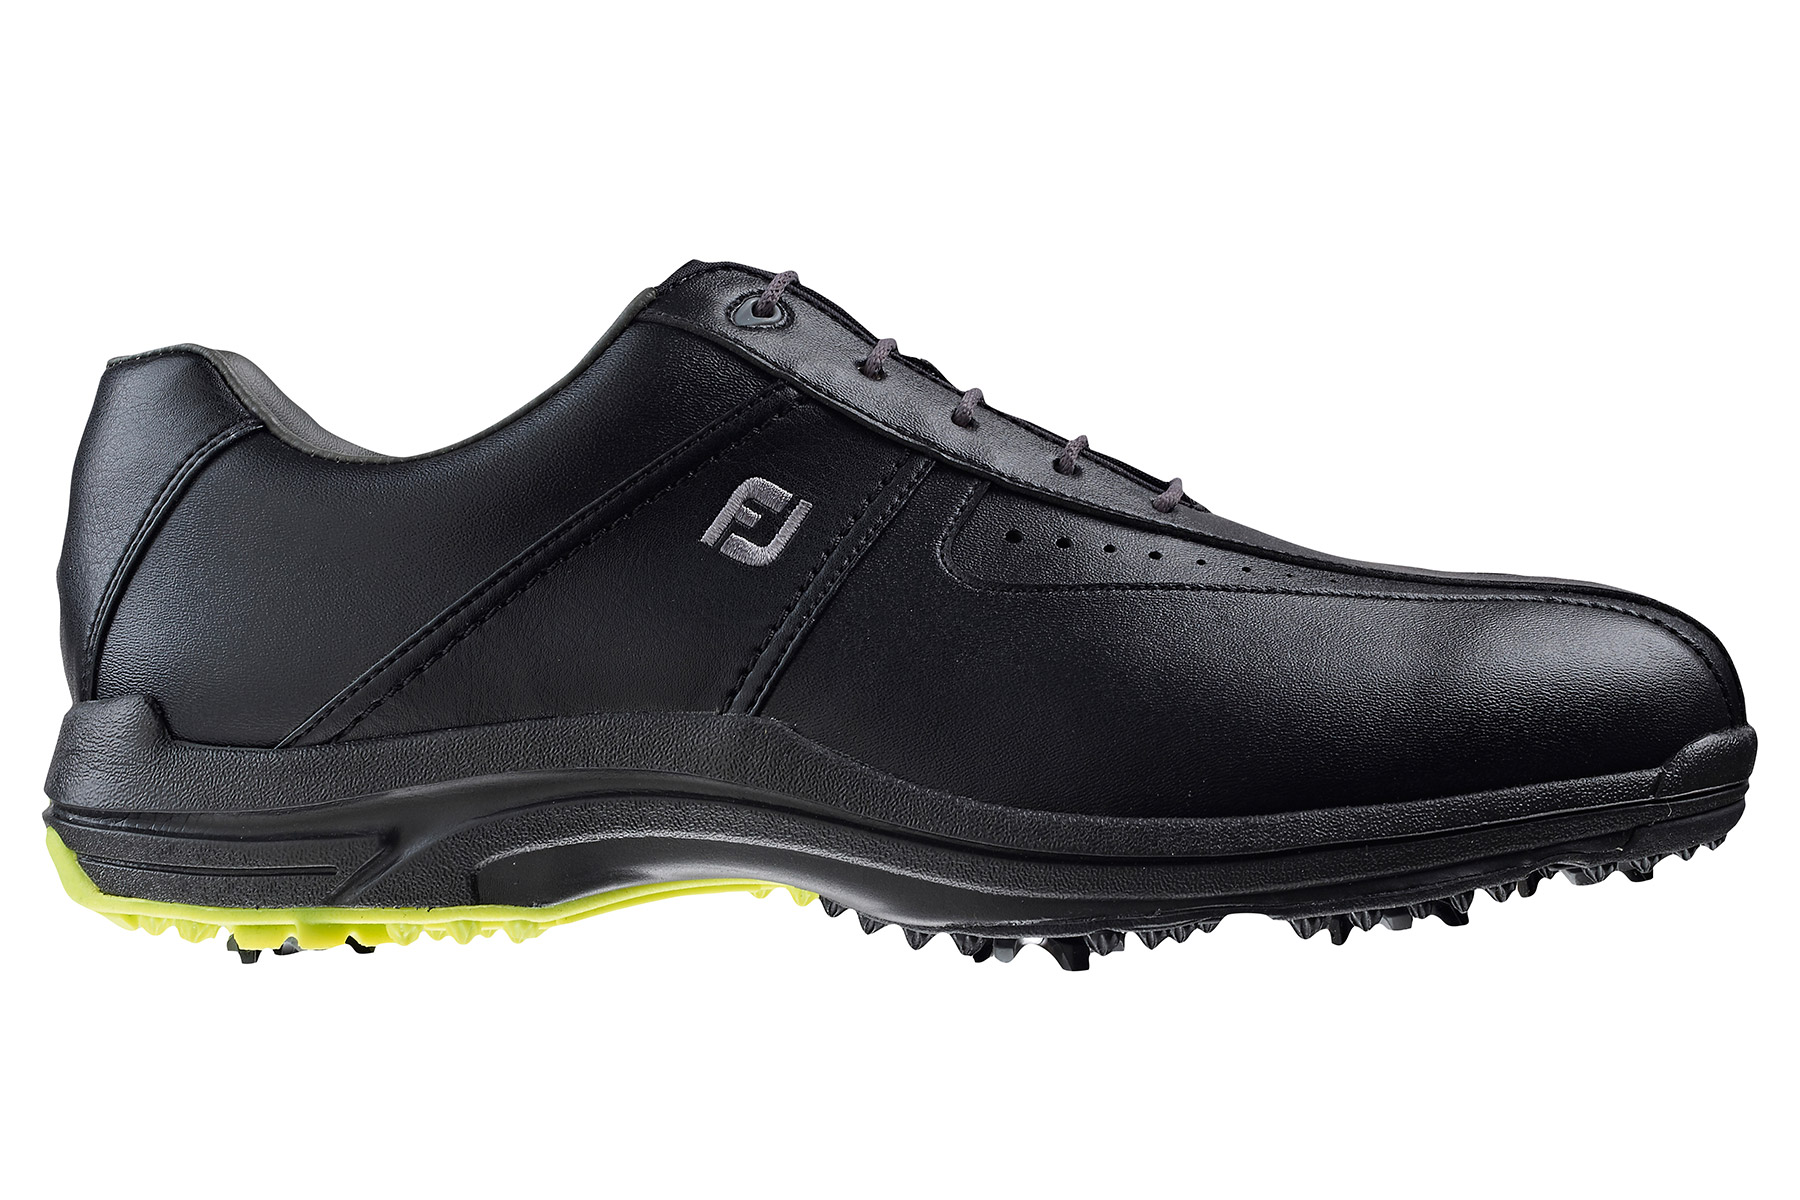 FootJoy GreenJoys Shoes from american golf